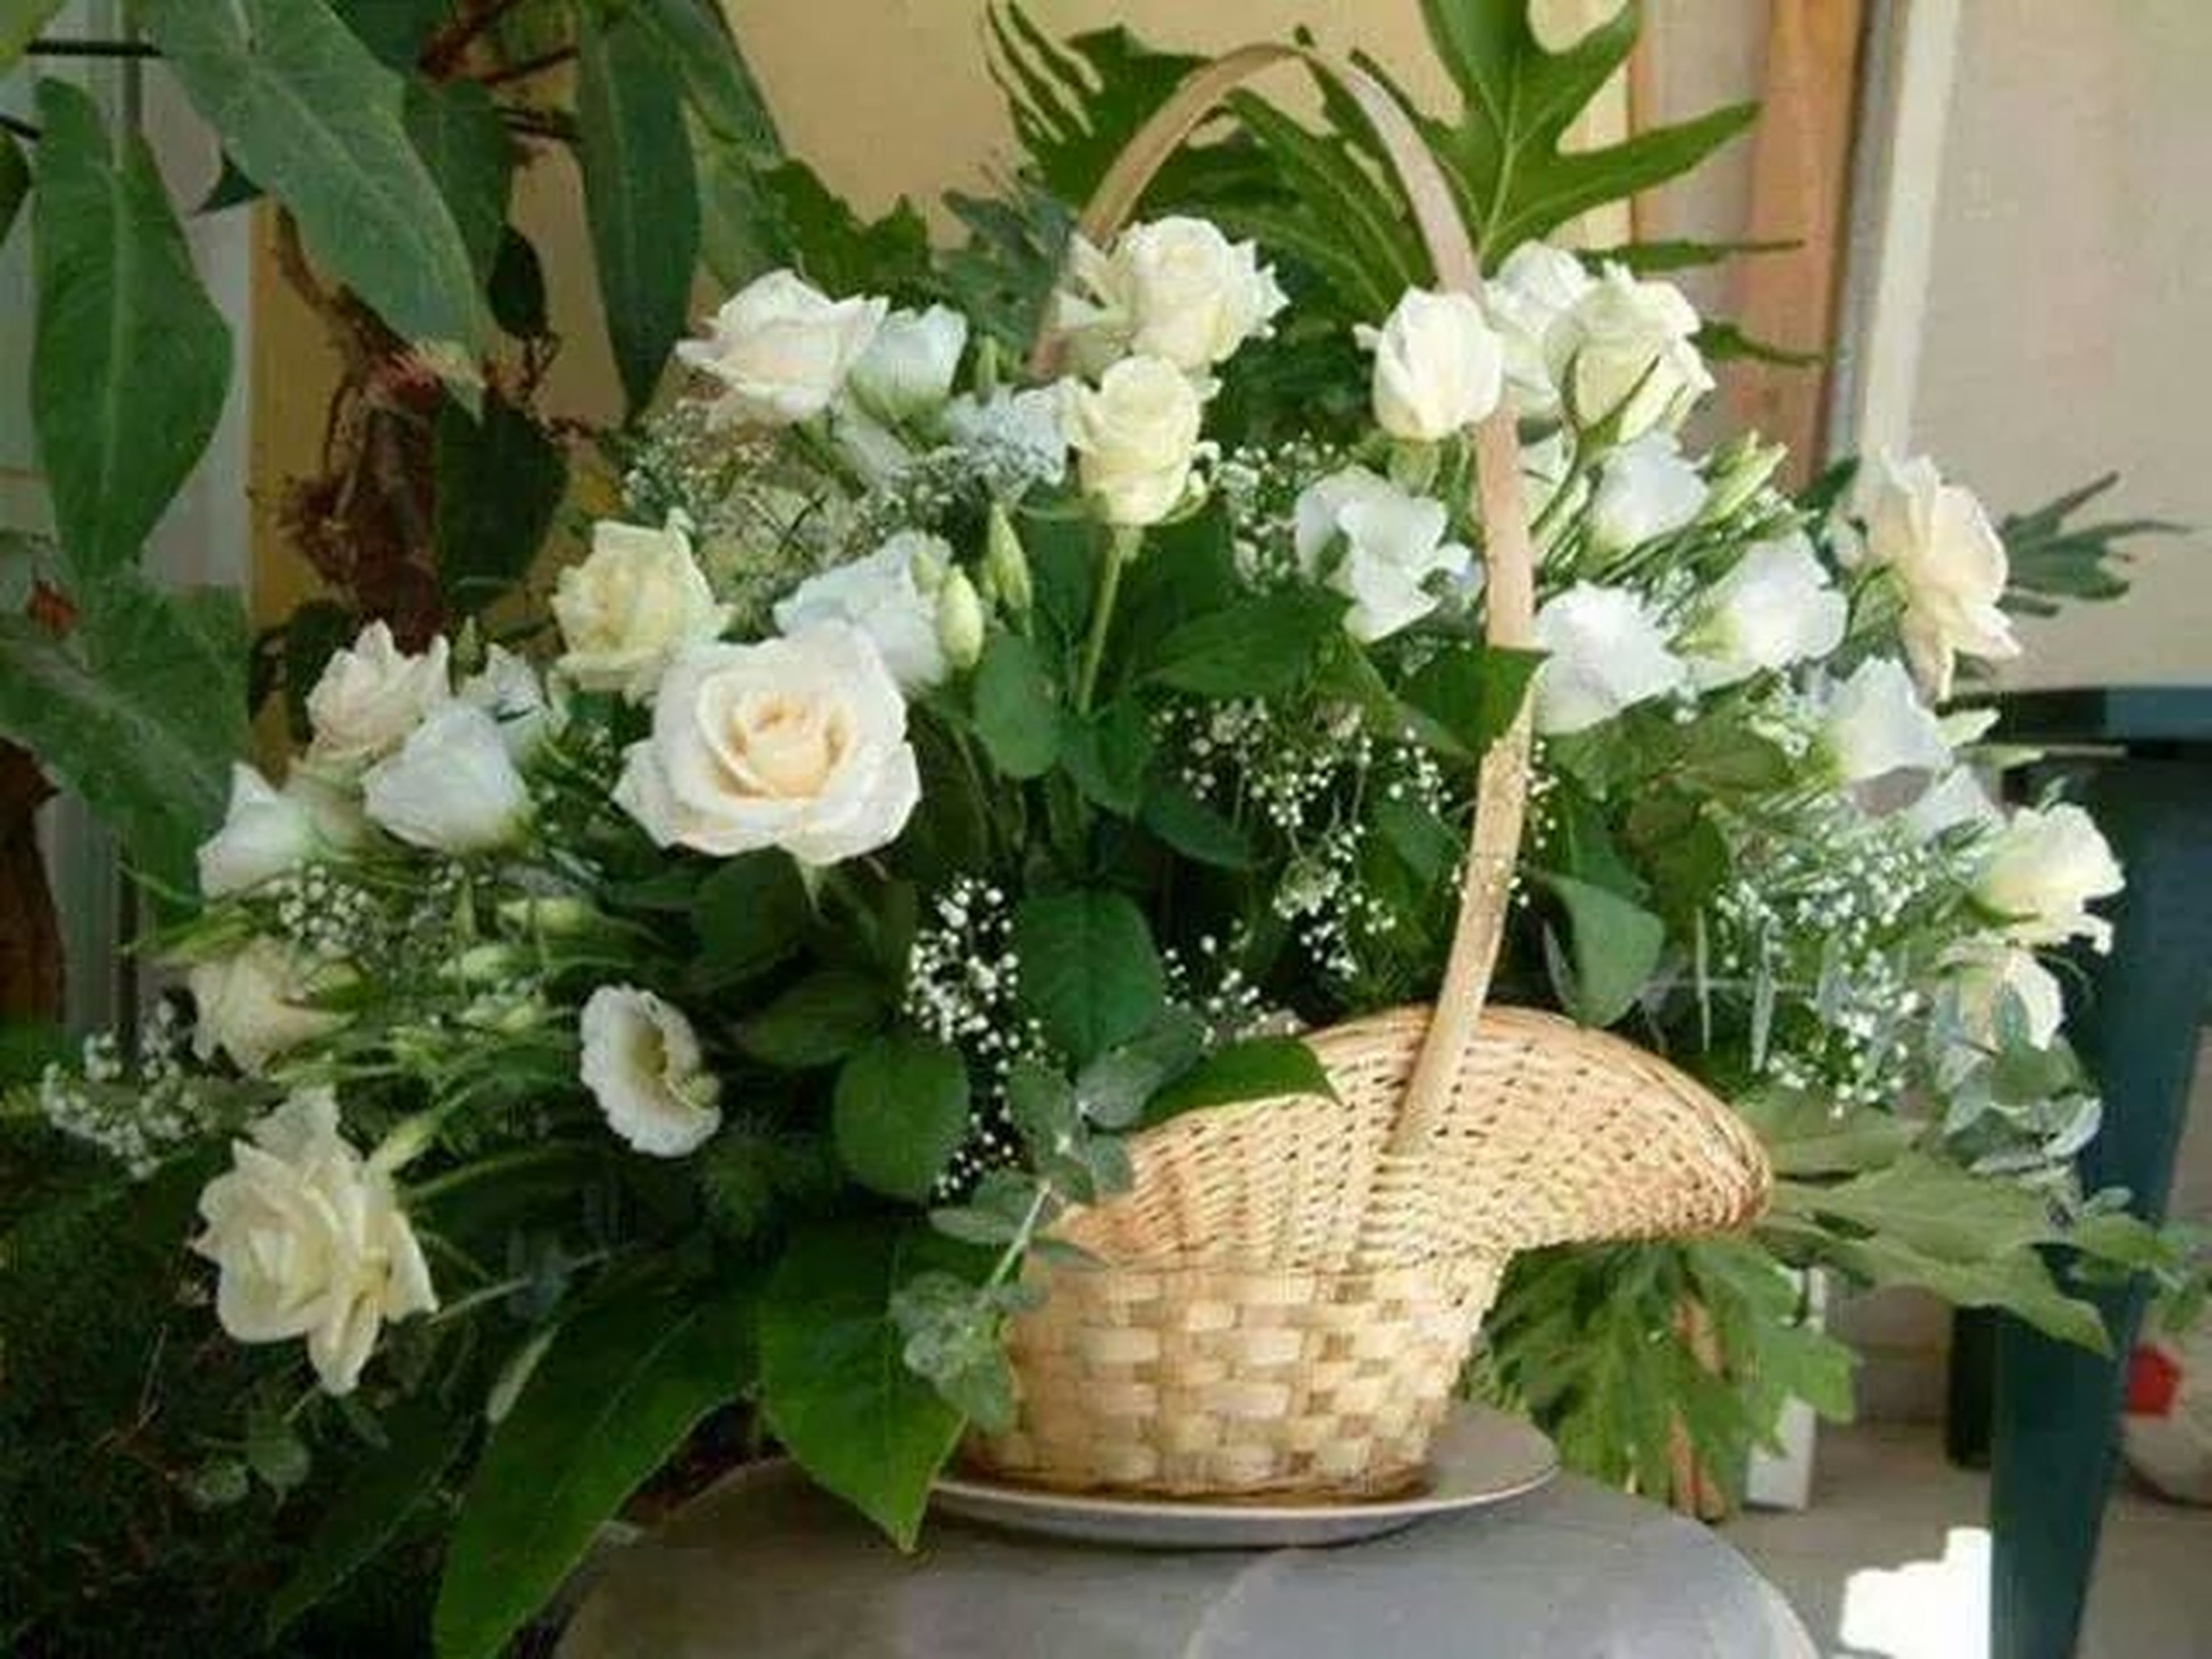 flower, freshness, fragility, petal, indoors, vase, white color, bouquet, bunch of flowers, plant, flower head, potted plant, growth, flower arrangement, beauty in nature, leaf, high angle view, nature, table, close-up